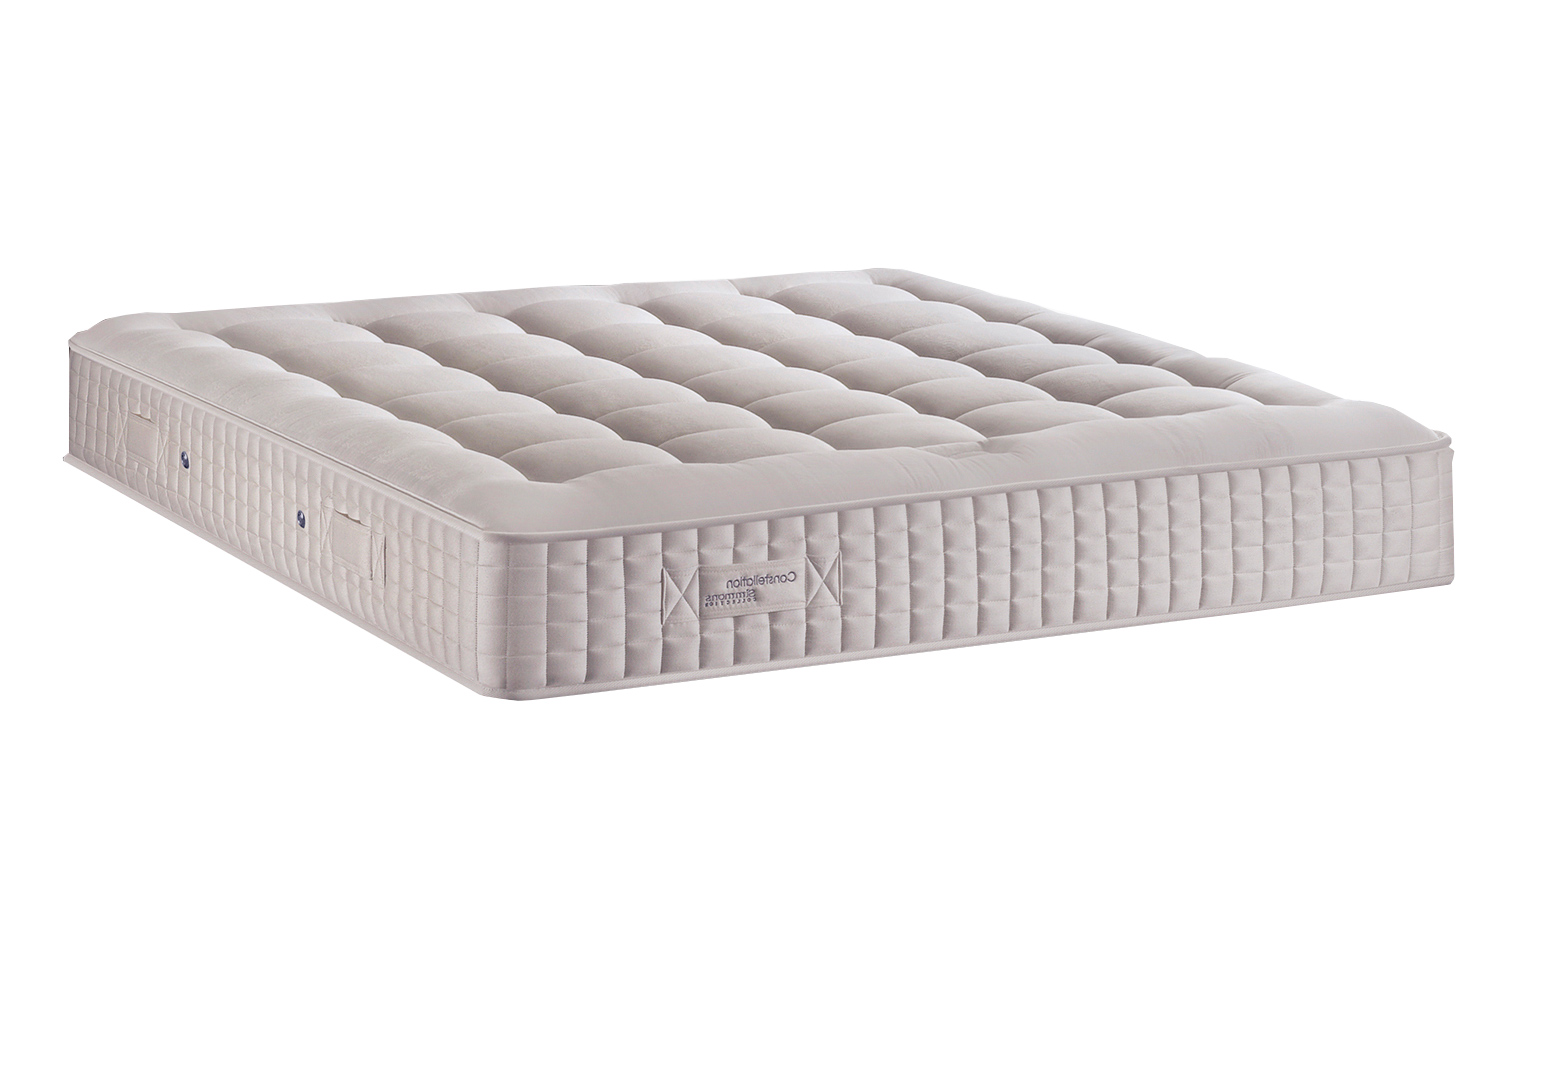 Duetto Select Matelas Select 1100 Simmons Matelas 1100 I76myvgYbf